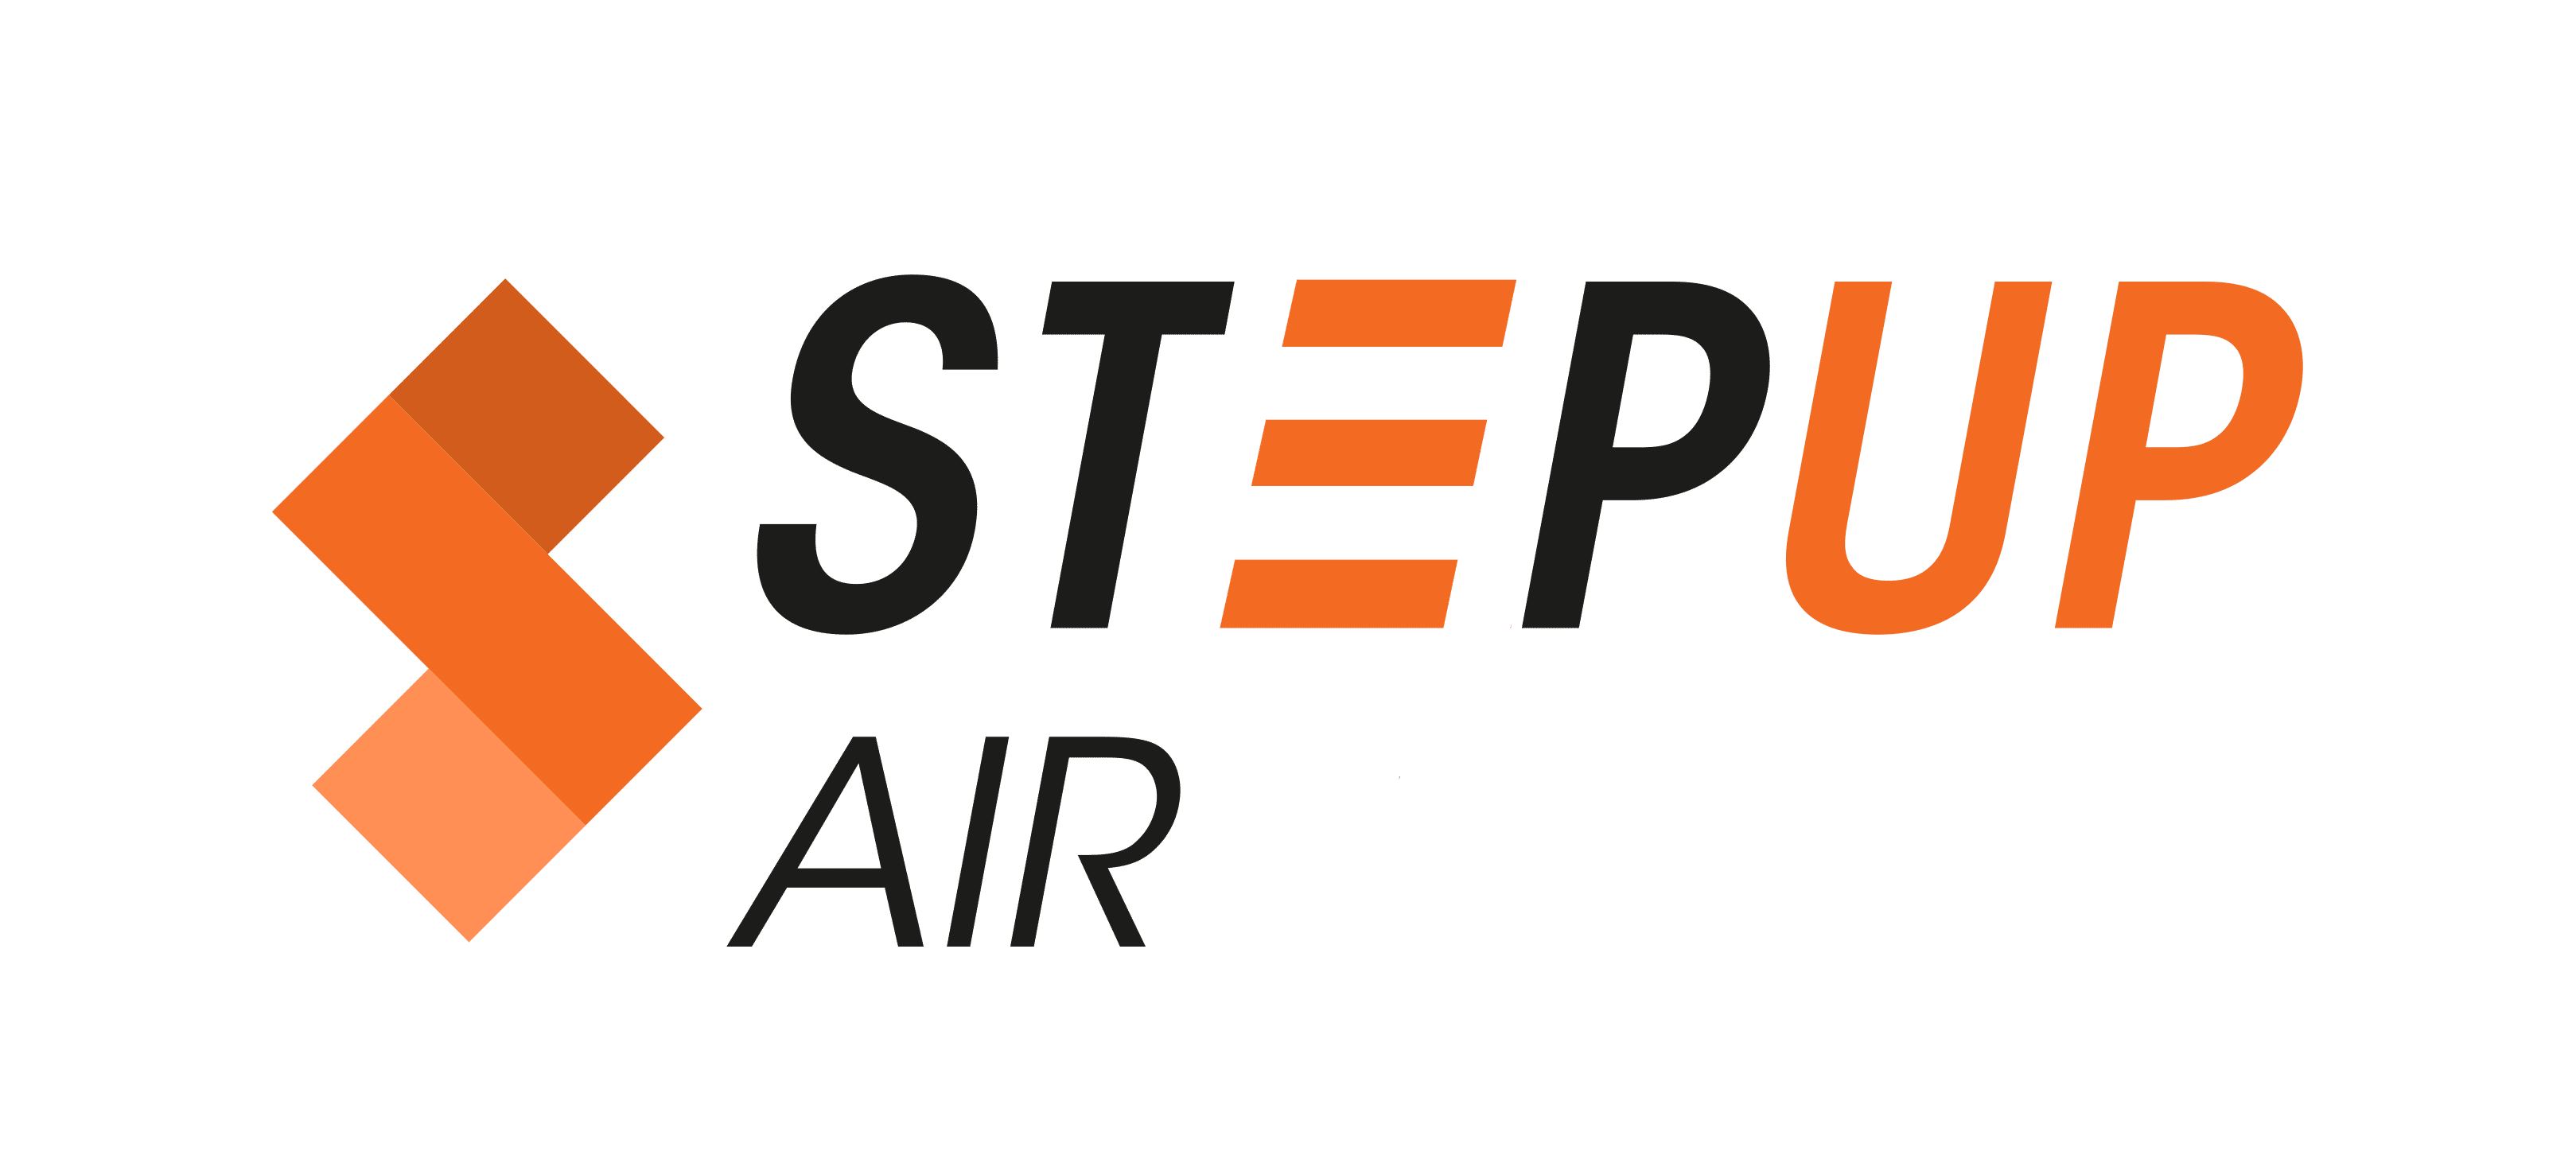 StepUp Air